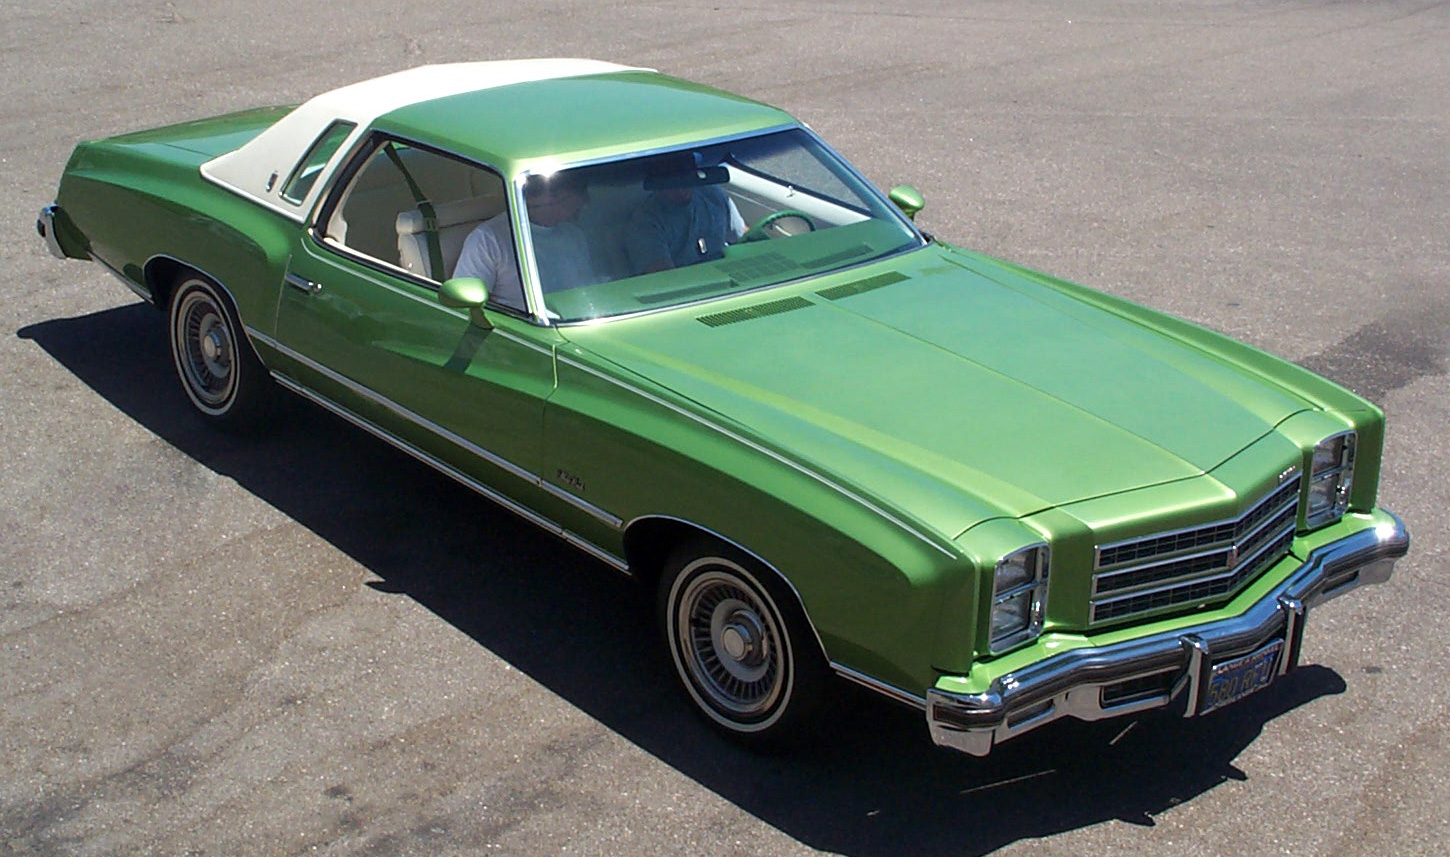 my curbside classic 1976 chevrolet monte carlo landau hope you like green. Black Bedroom Furniture Sets. Home Design Ideas